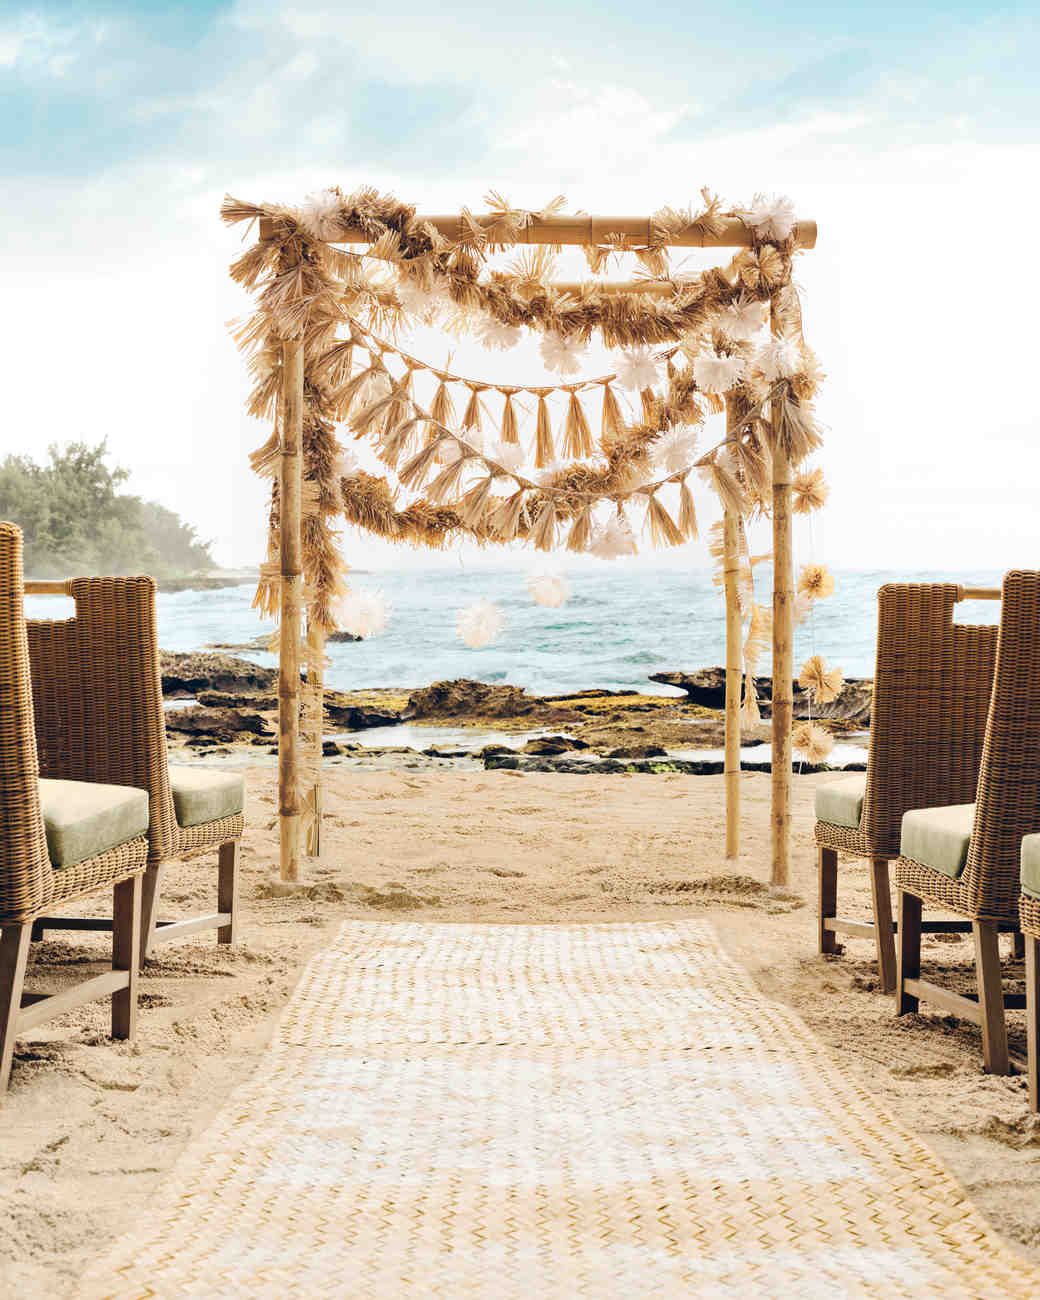 Diy Beach Wedding Arch: 23 Beach Wedding Ideas You Can DIY To Make A Splash At